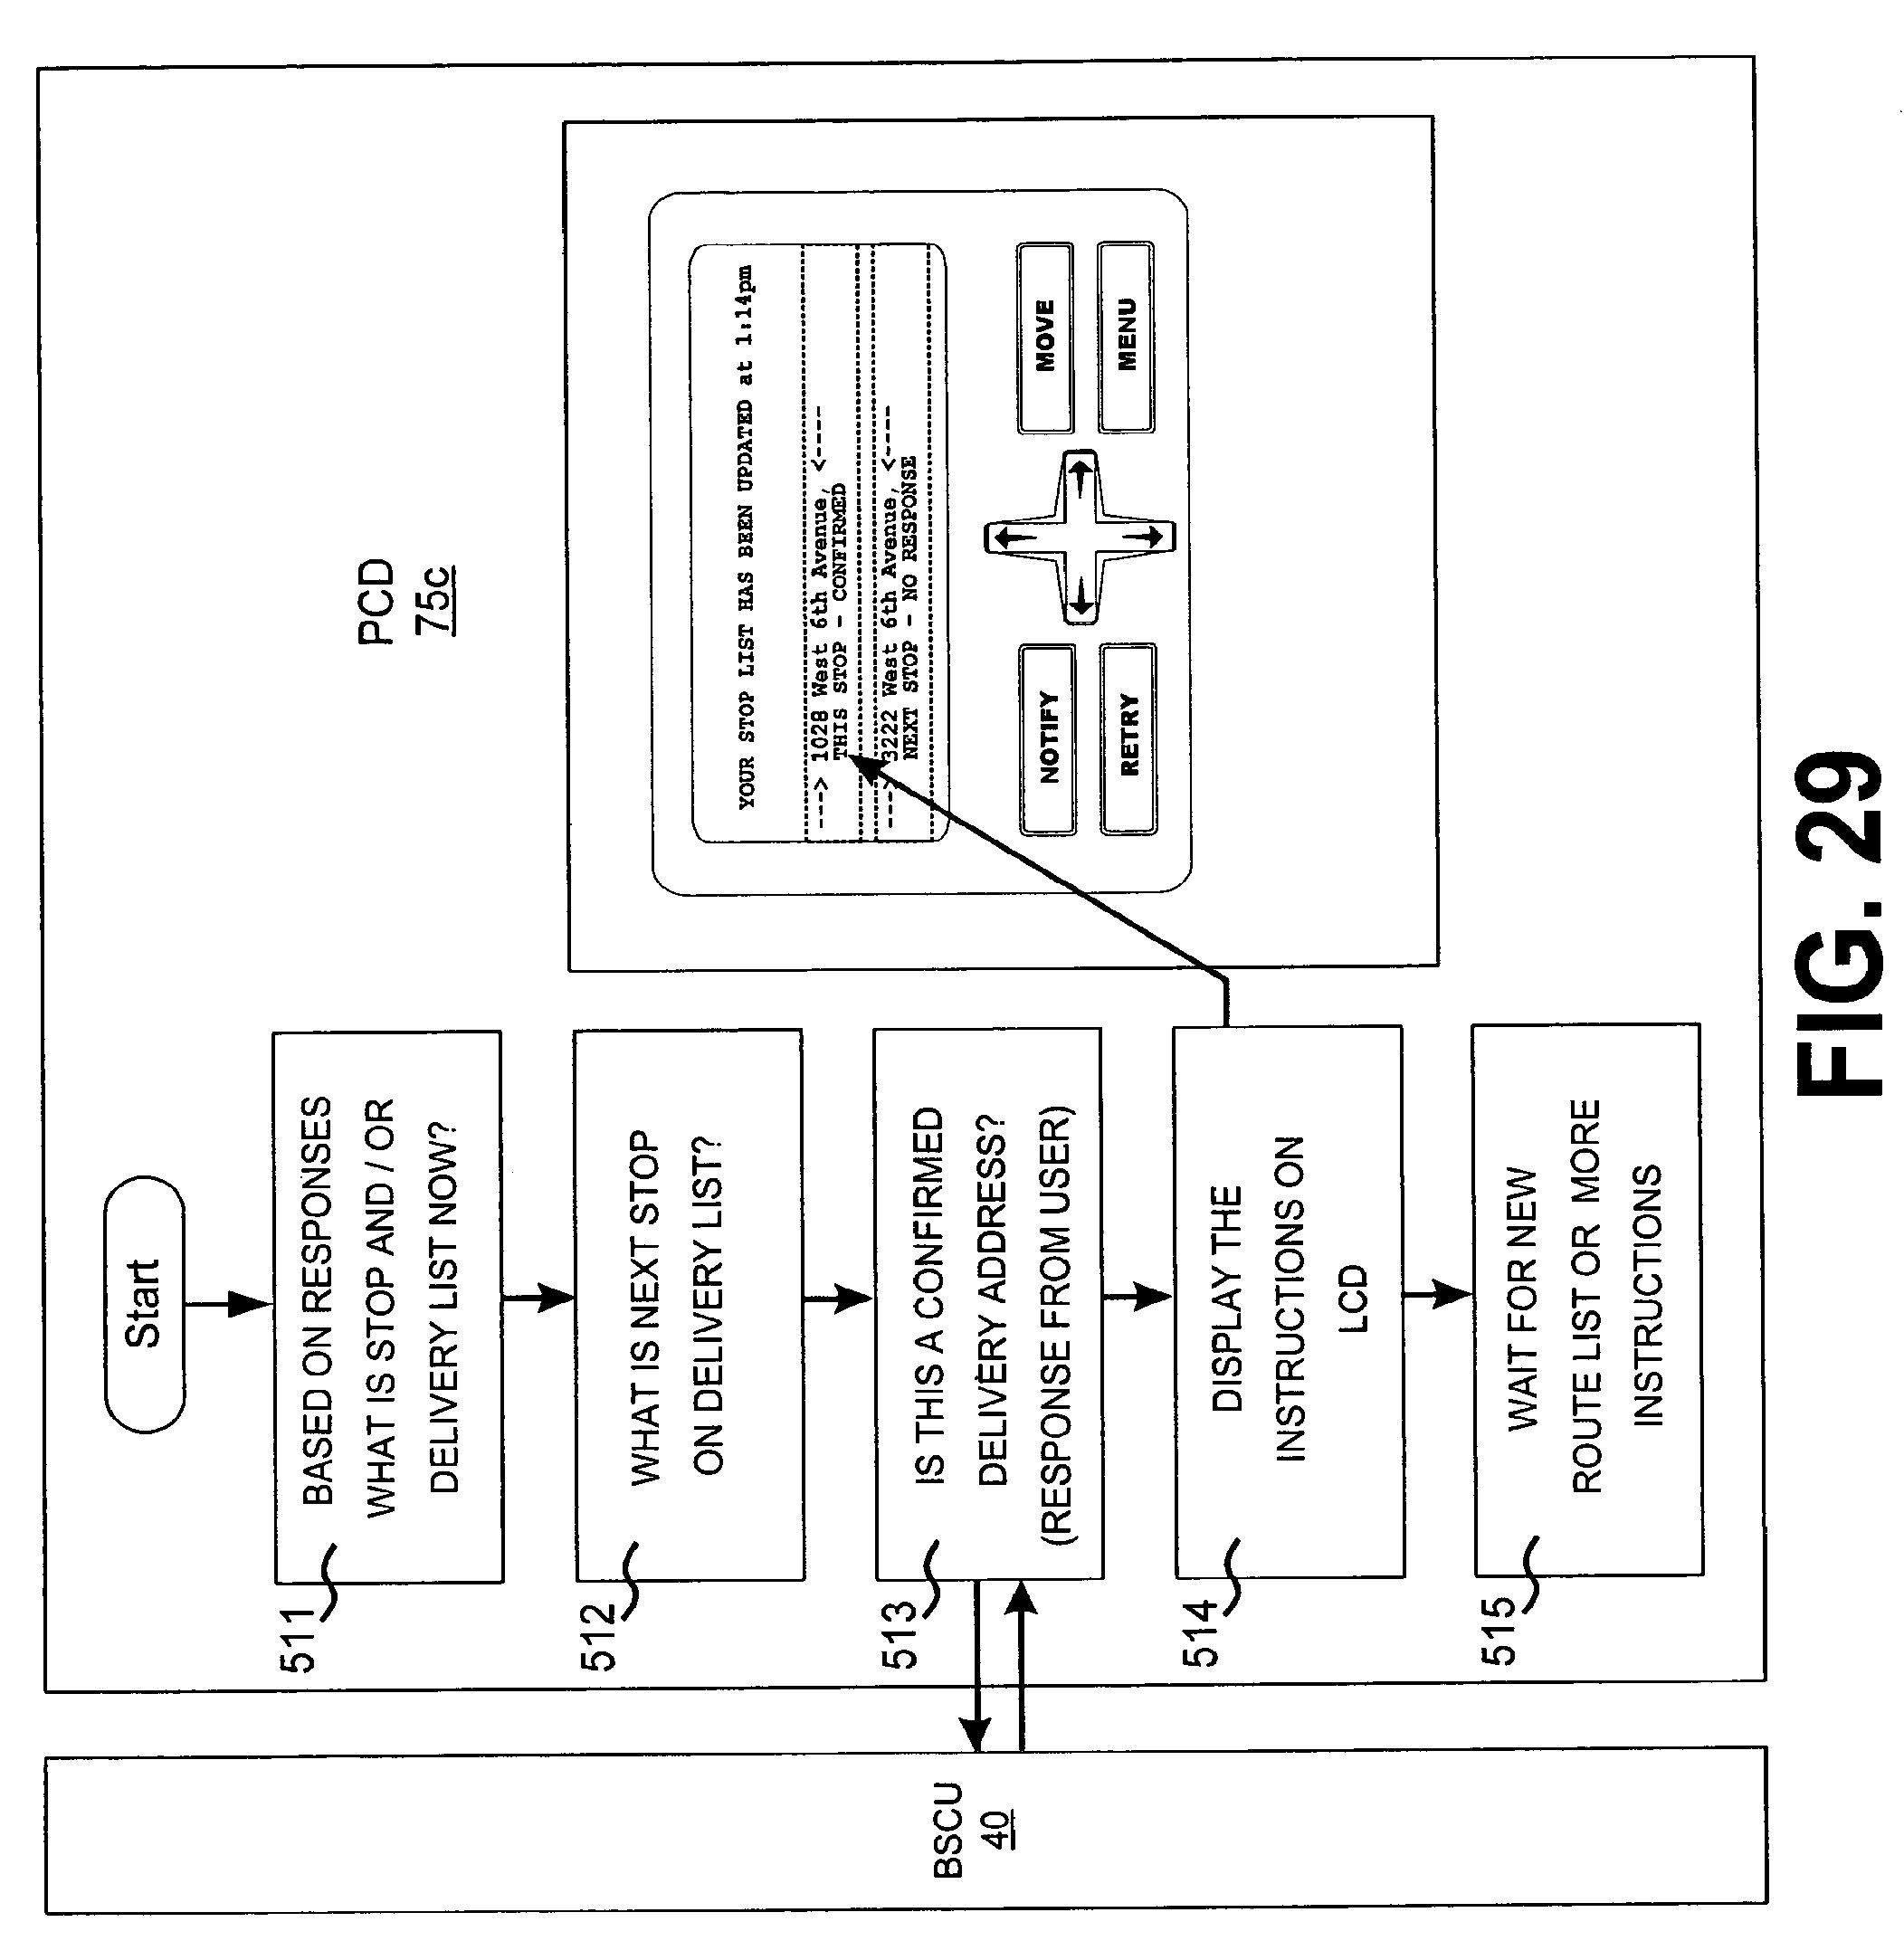 Patent Us8368562 Systems And Methods For A Notification System